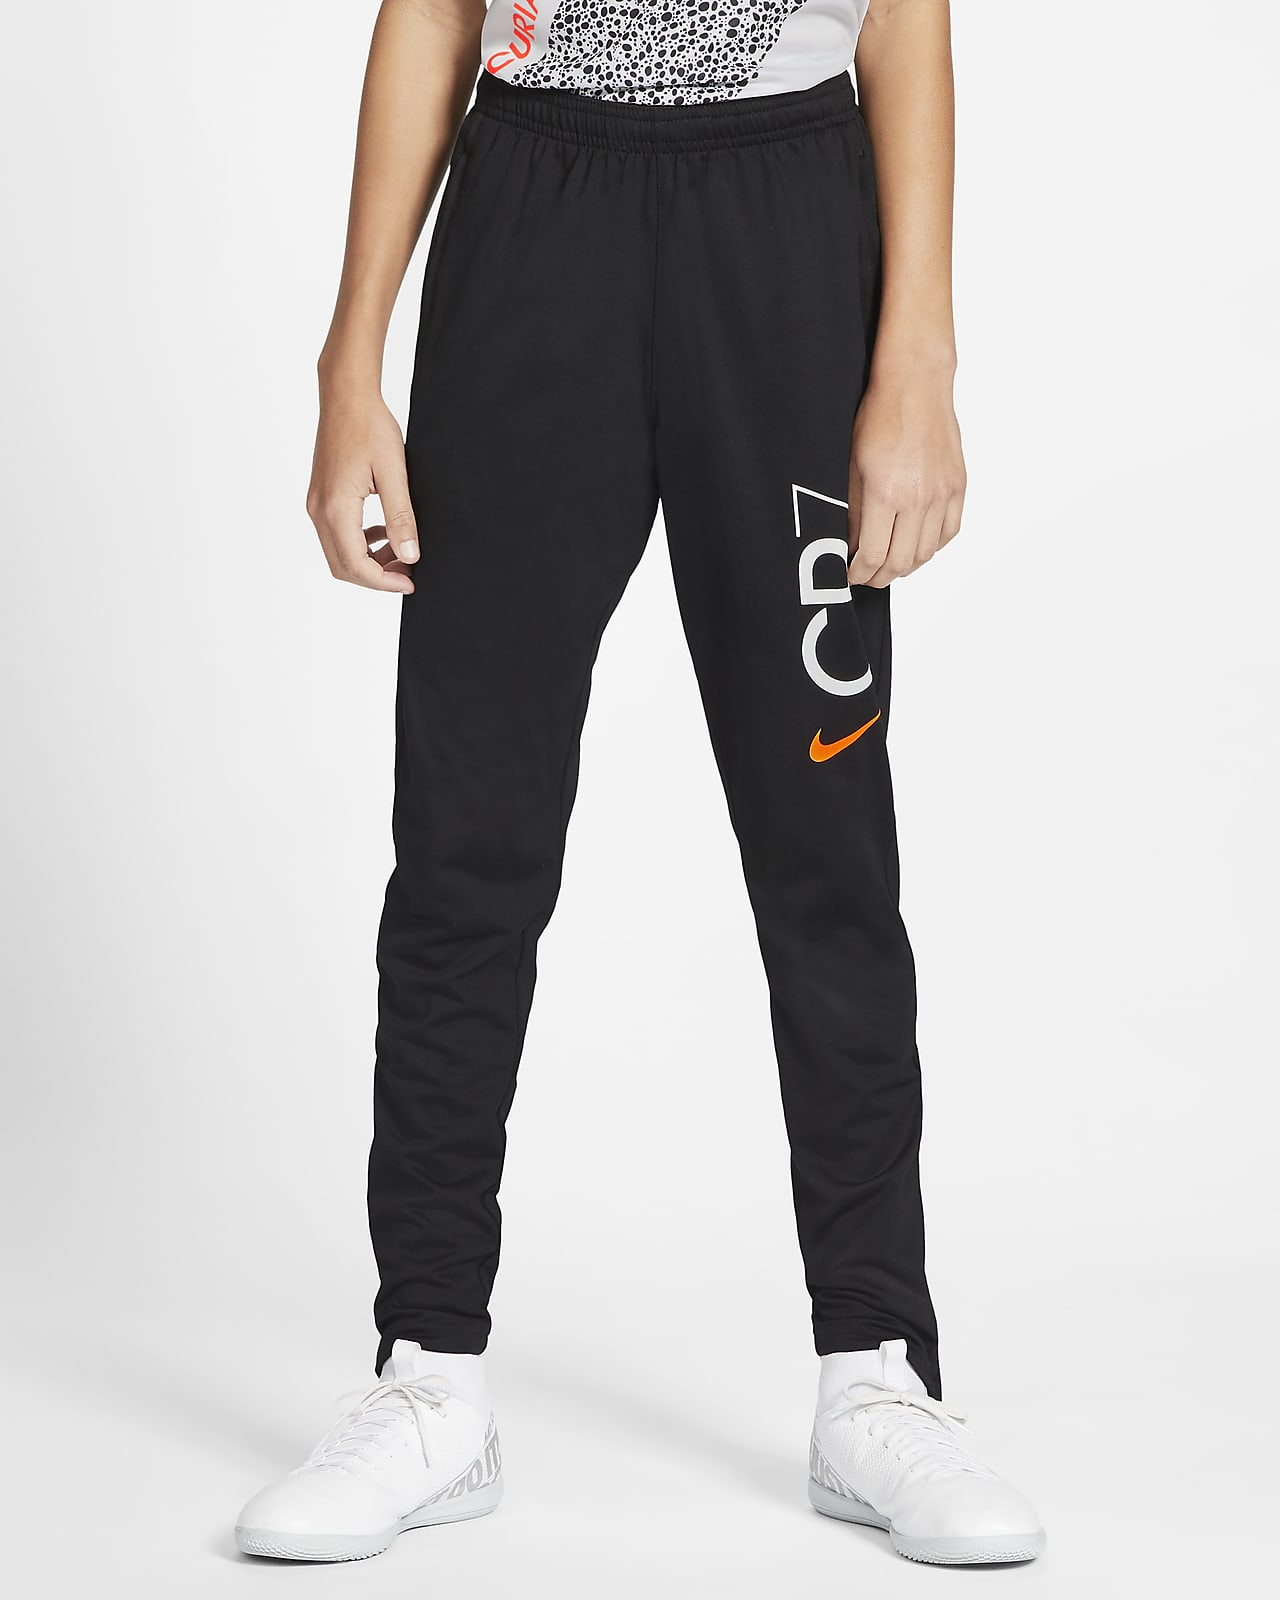 Nike Dri-FIT CR7 Older Kids' Football Pants